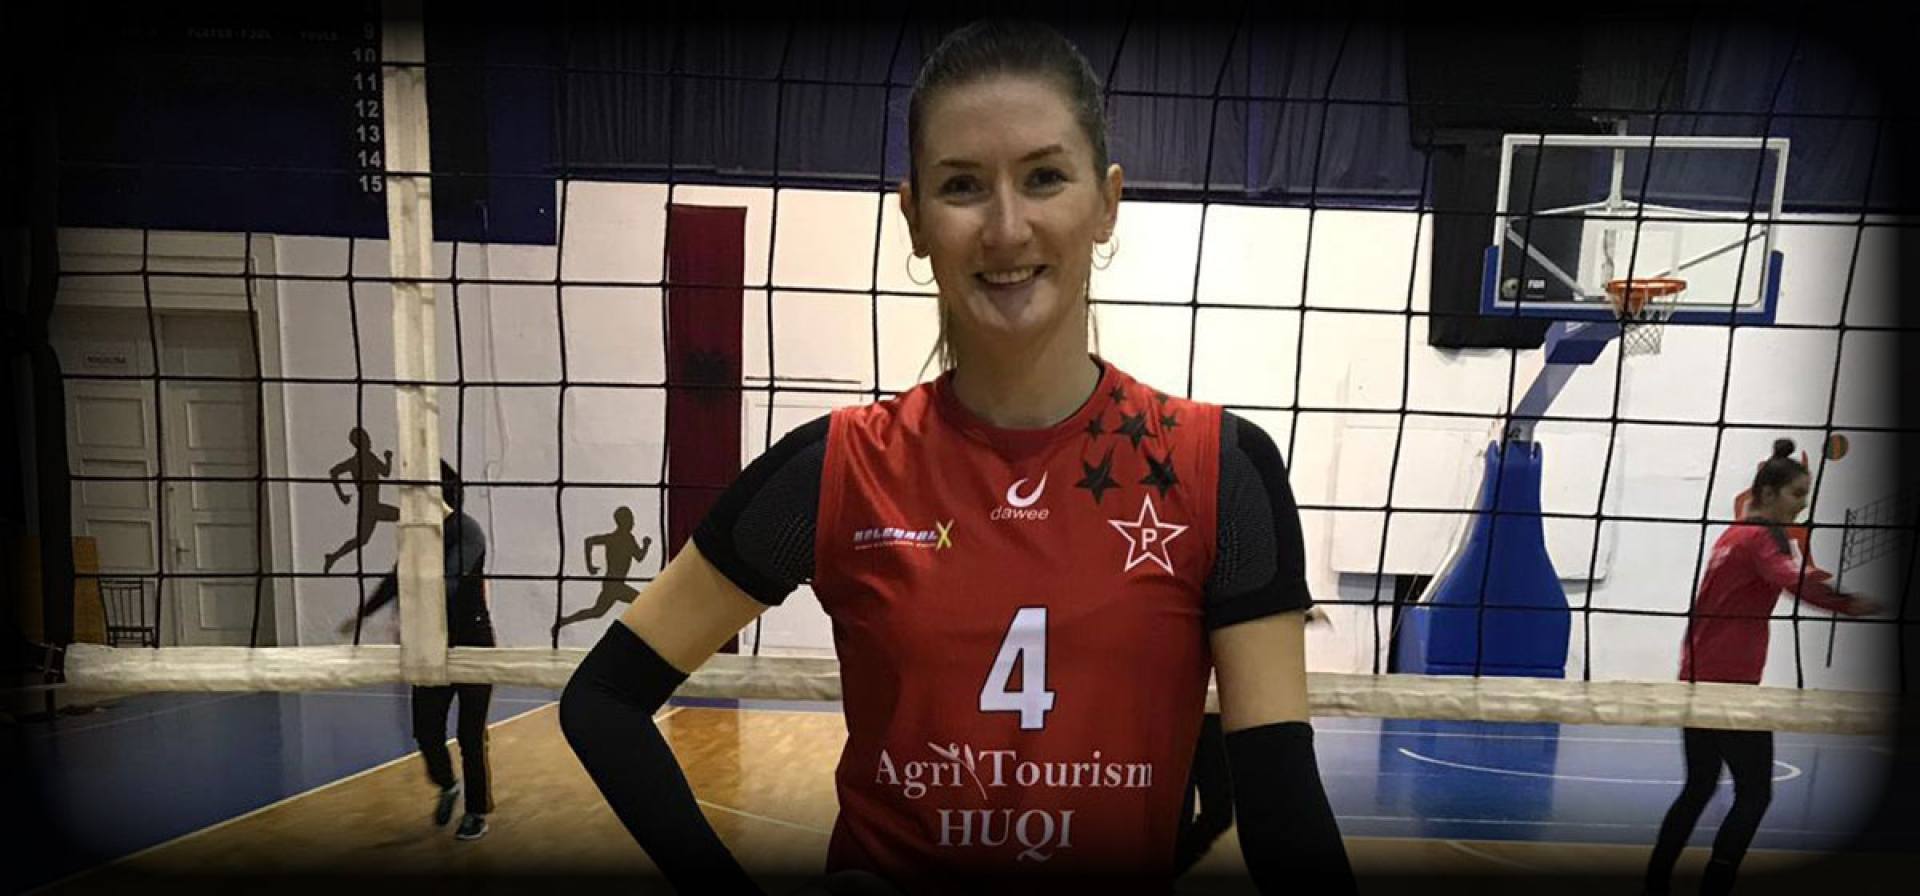 1st TURKISH PLAYER AT ALBANIAN VOLLEYBALL